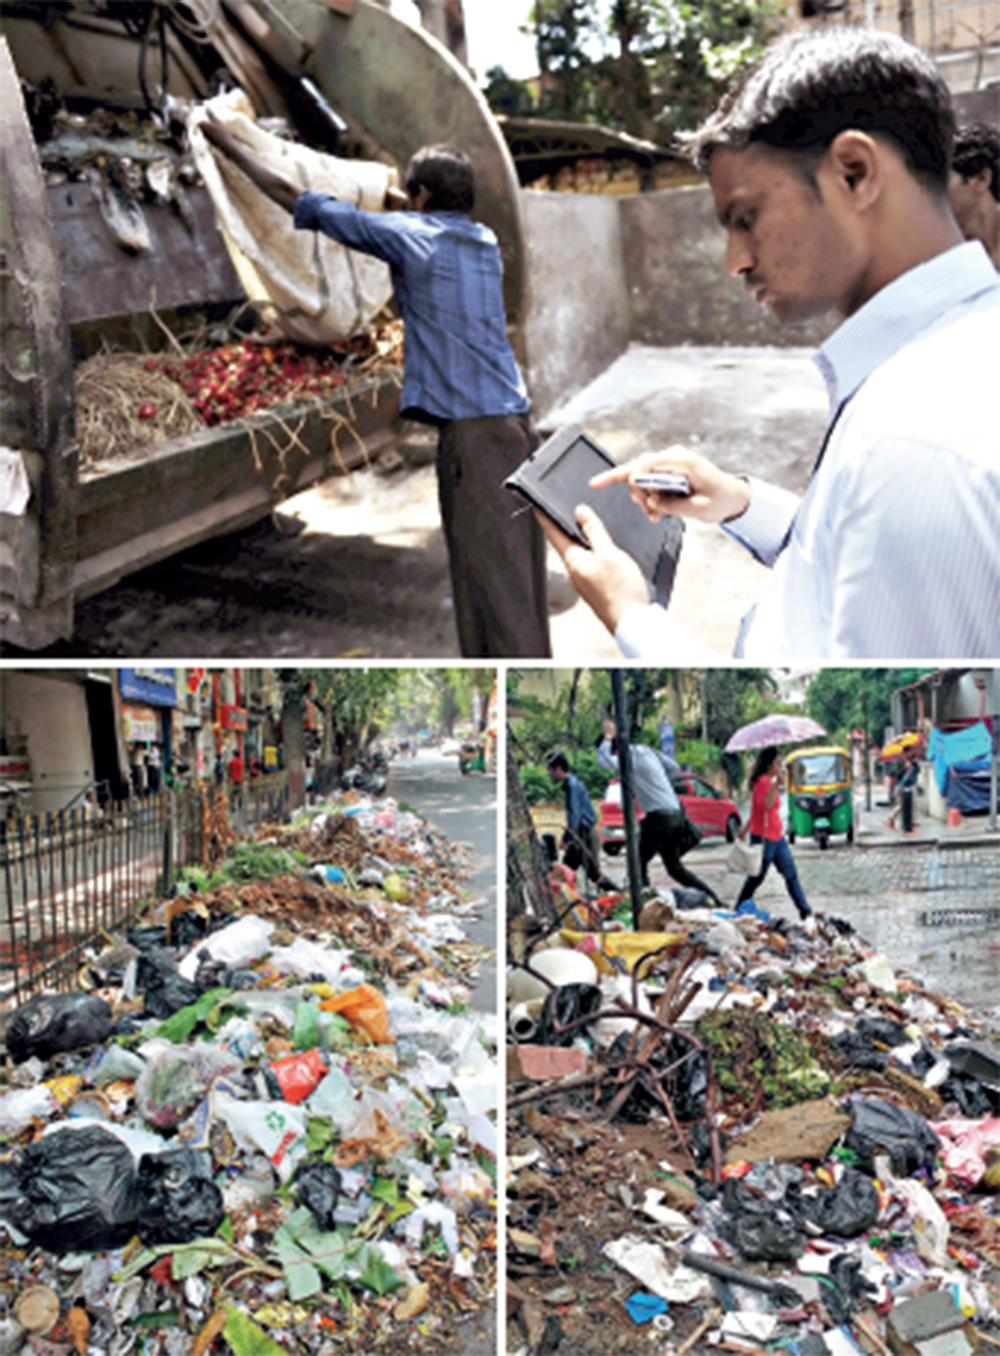 BBMP encourages Bengalureans to report common problems such as garbage, poor roads, tree-felling etc through the Sahaaya citizen-centric service interface